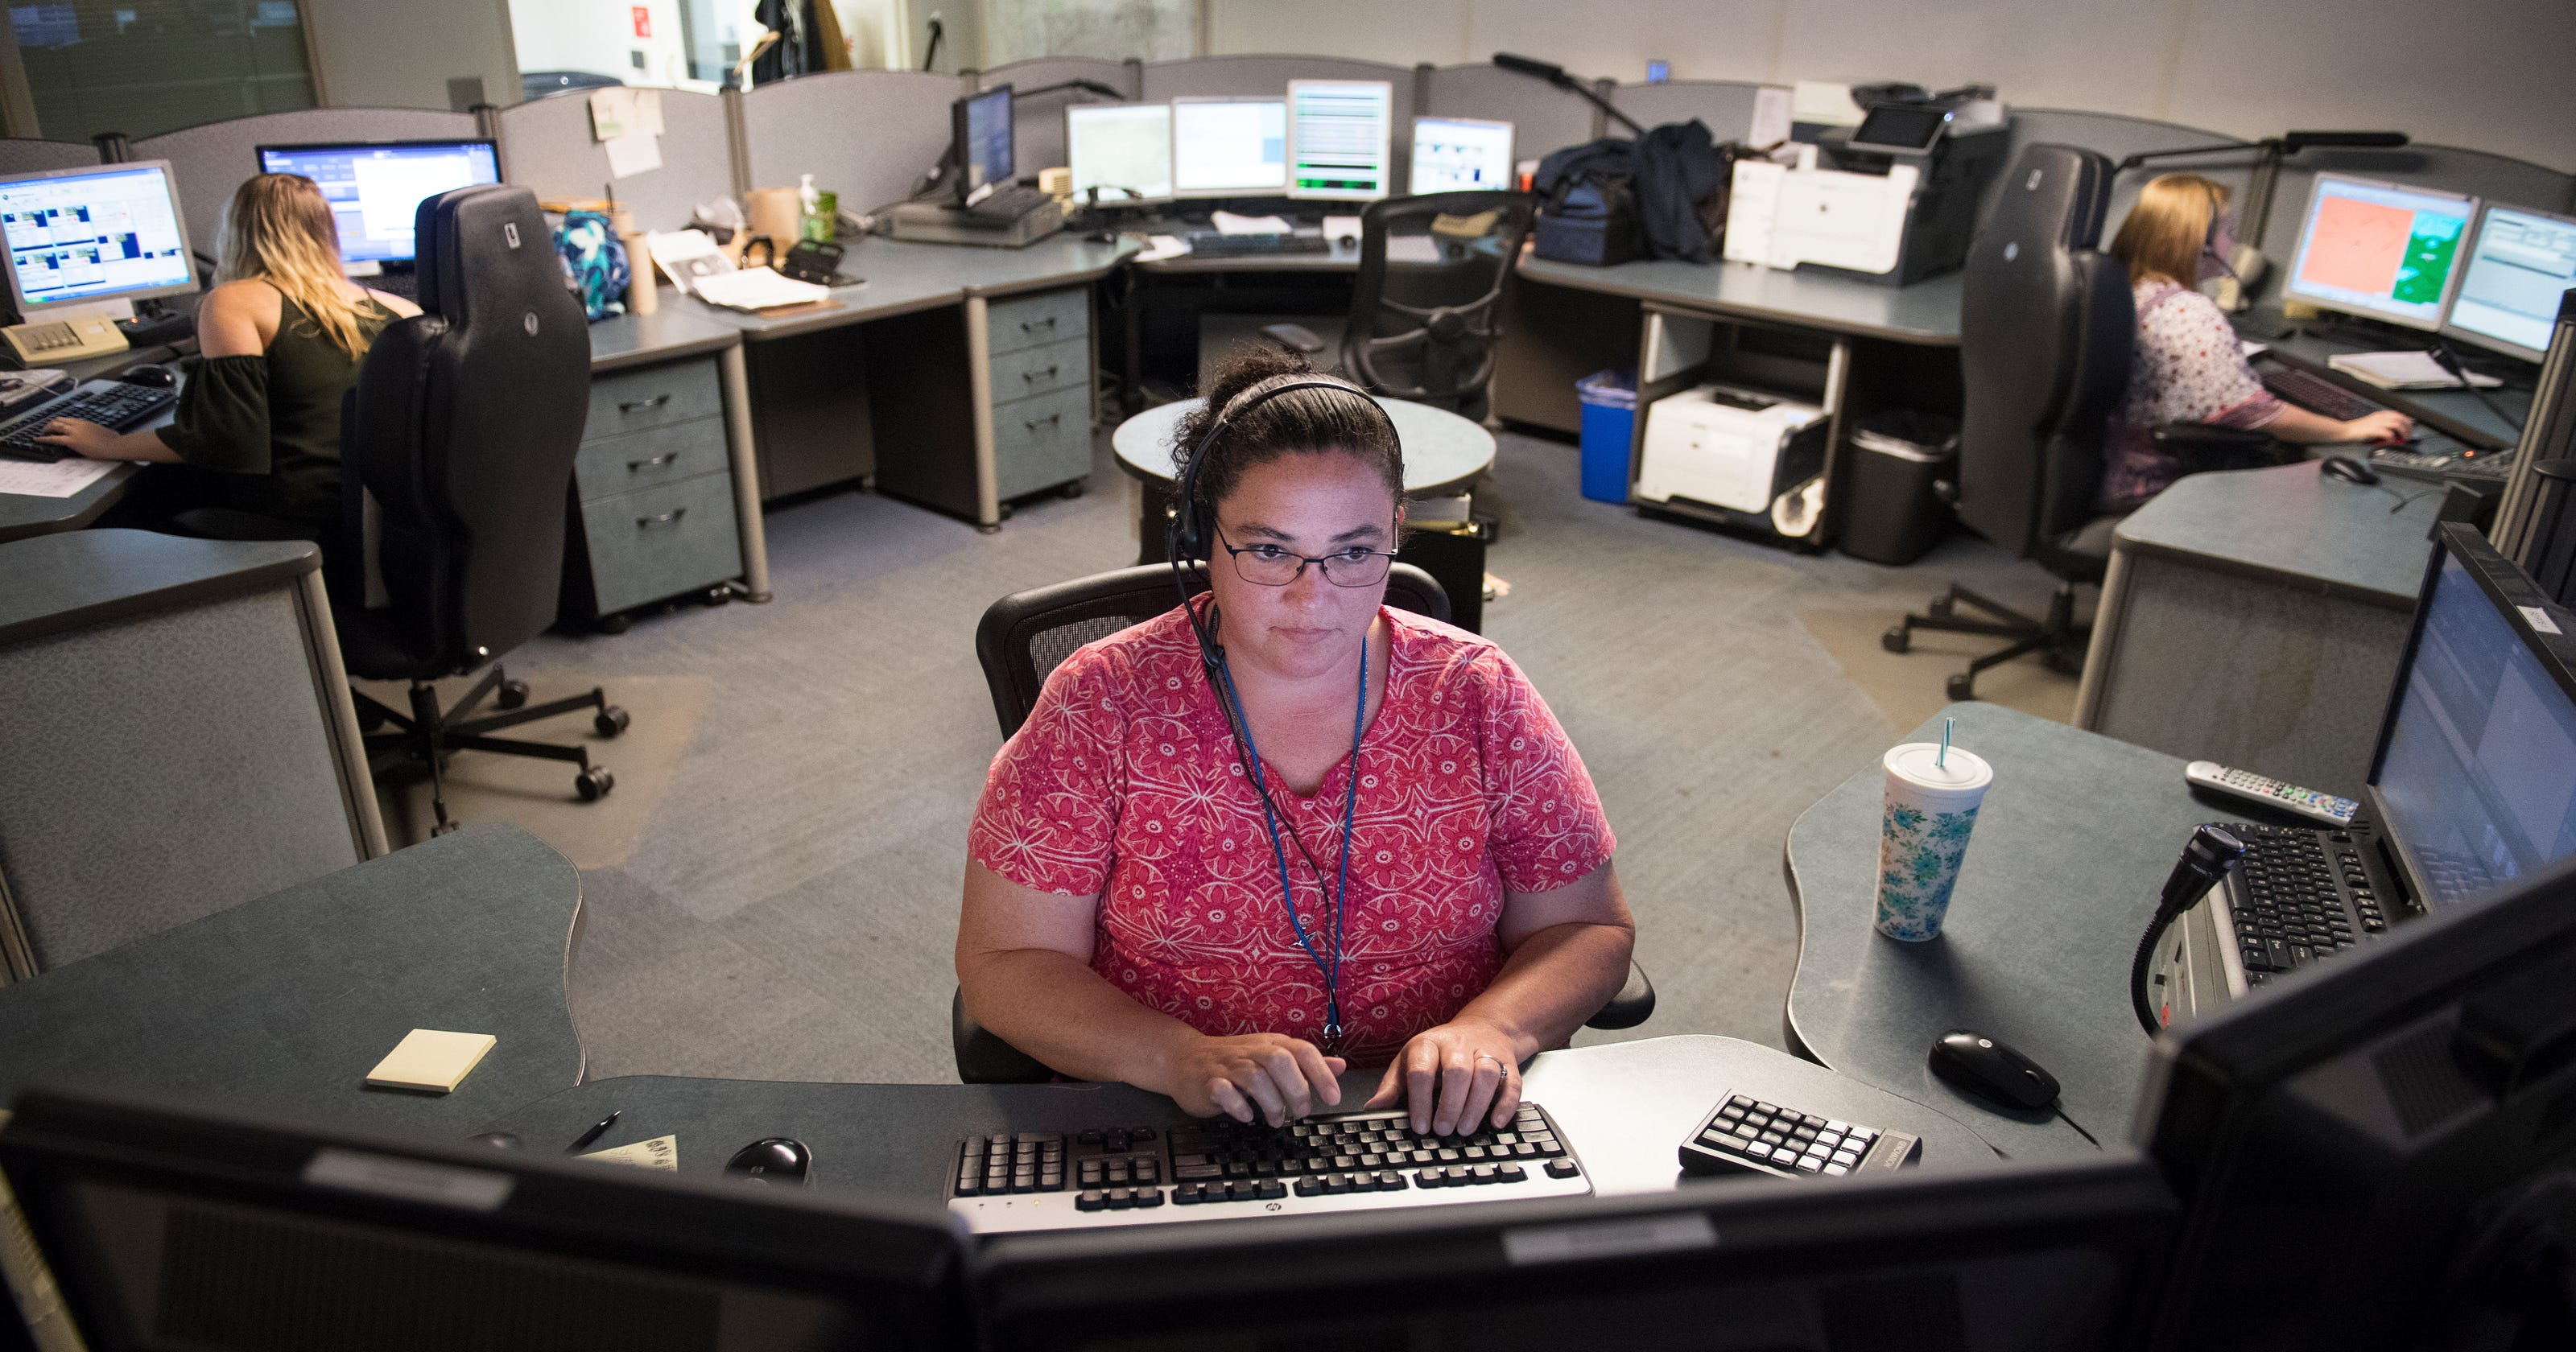 911 dispatchers are in short supply, slowing average